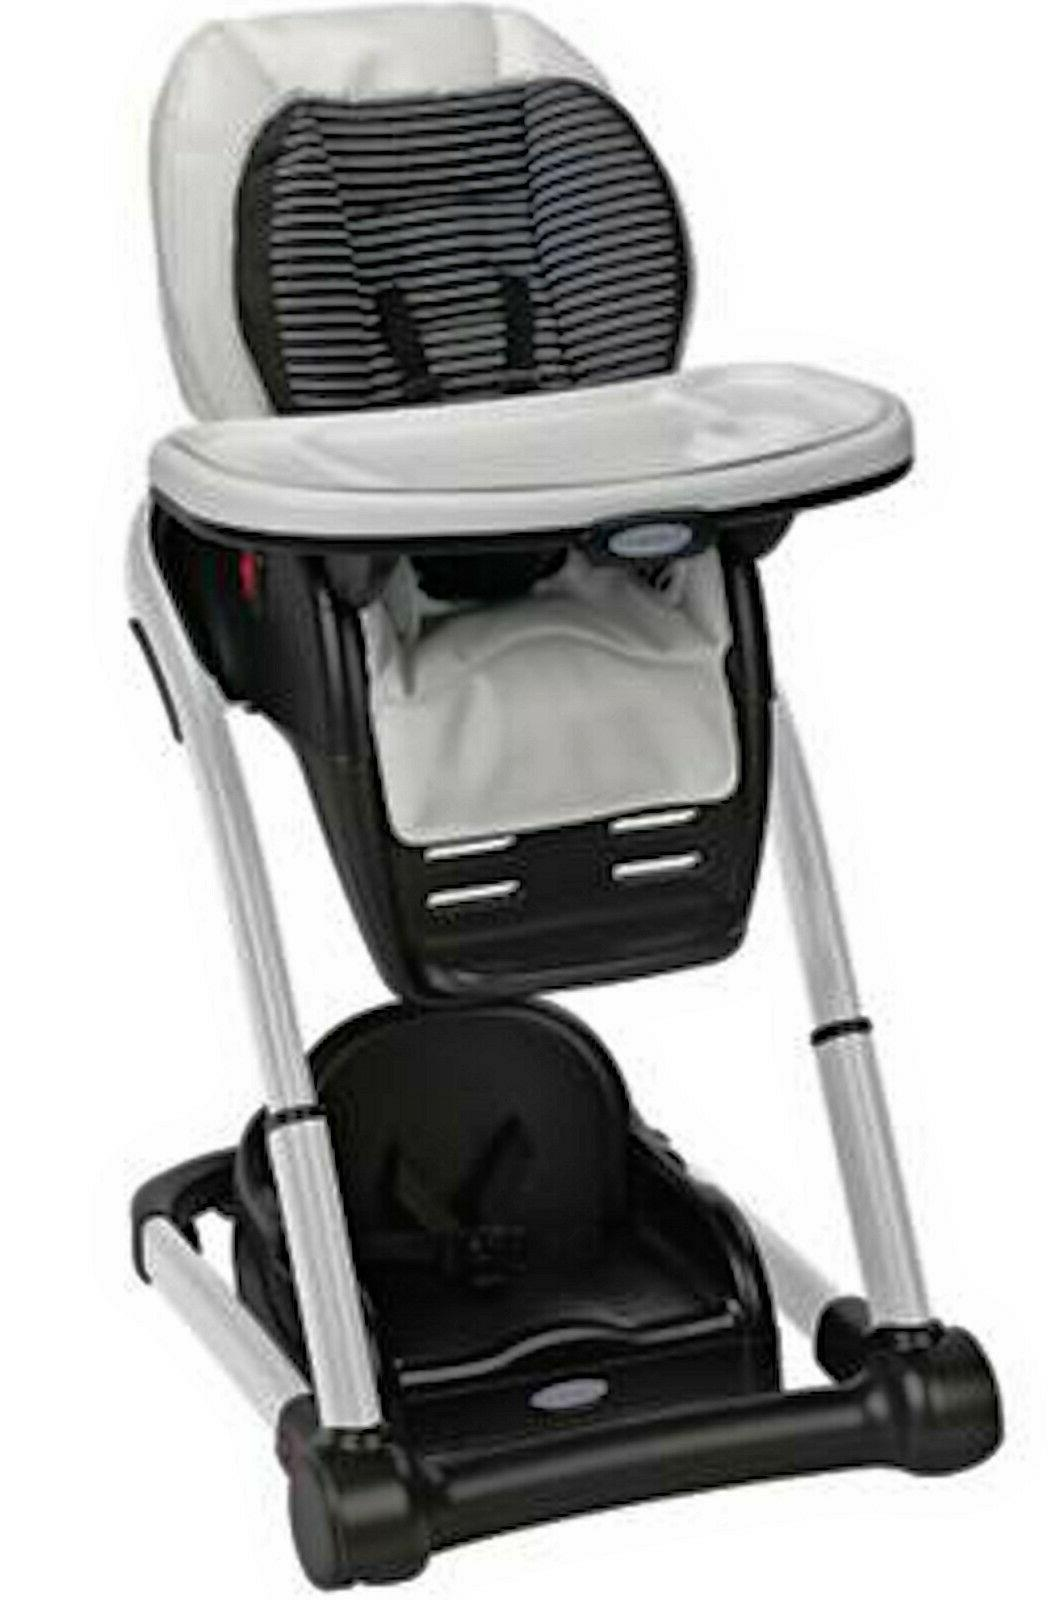 GRACO BLOSSOM 6-IN-1 Highchair 1925913 Booster 2 KIDS AT ONC